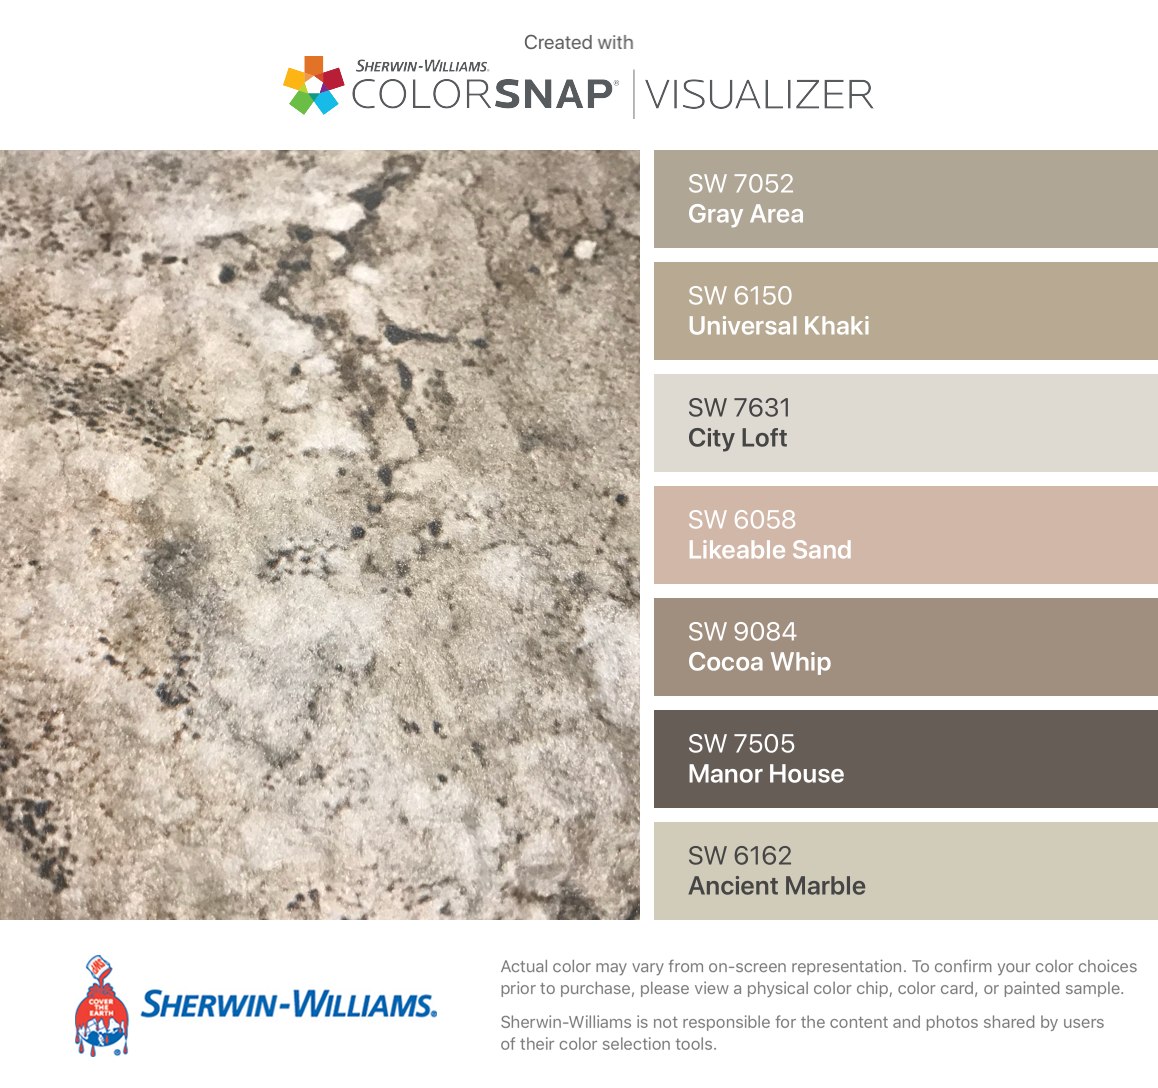 I found these colors with ColorSnap® Visualizer for iPhone by Sherwin-Williams: Gray Area (SW 7052), Universal Khaki (SW 6150), City Loft (SW 7631), Likeable Sand (SW 6058), Cocoa Whip (SW 9084), Manor House (SW 7505), Ancient Marble (SW 6162). #cityloftsherwinwilliams